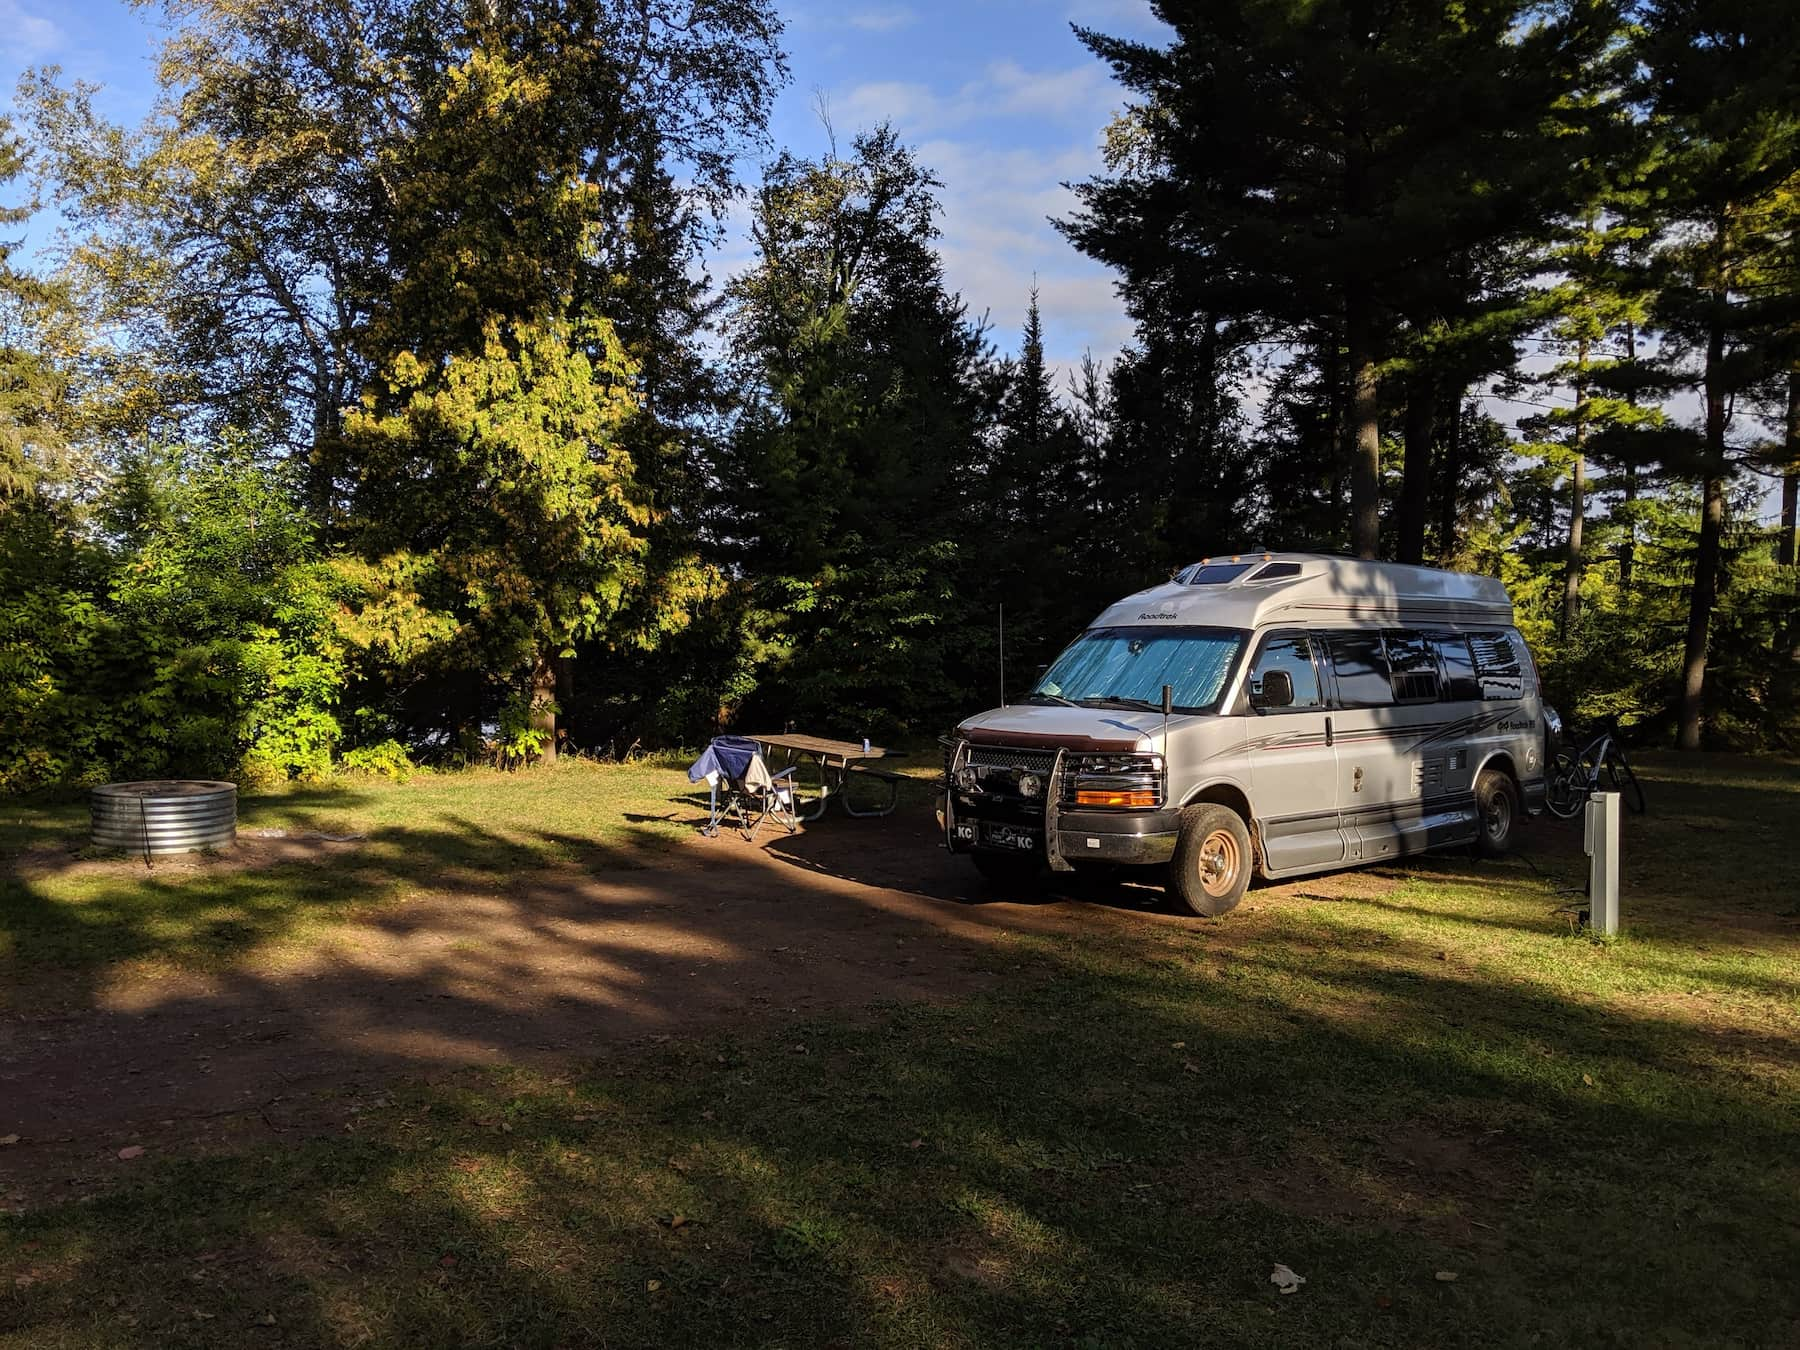 Van parked at campsite beside fire ring within the forest.